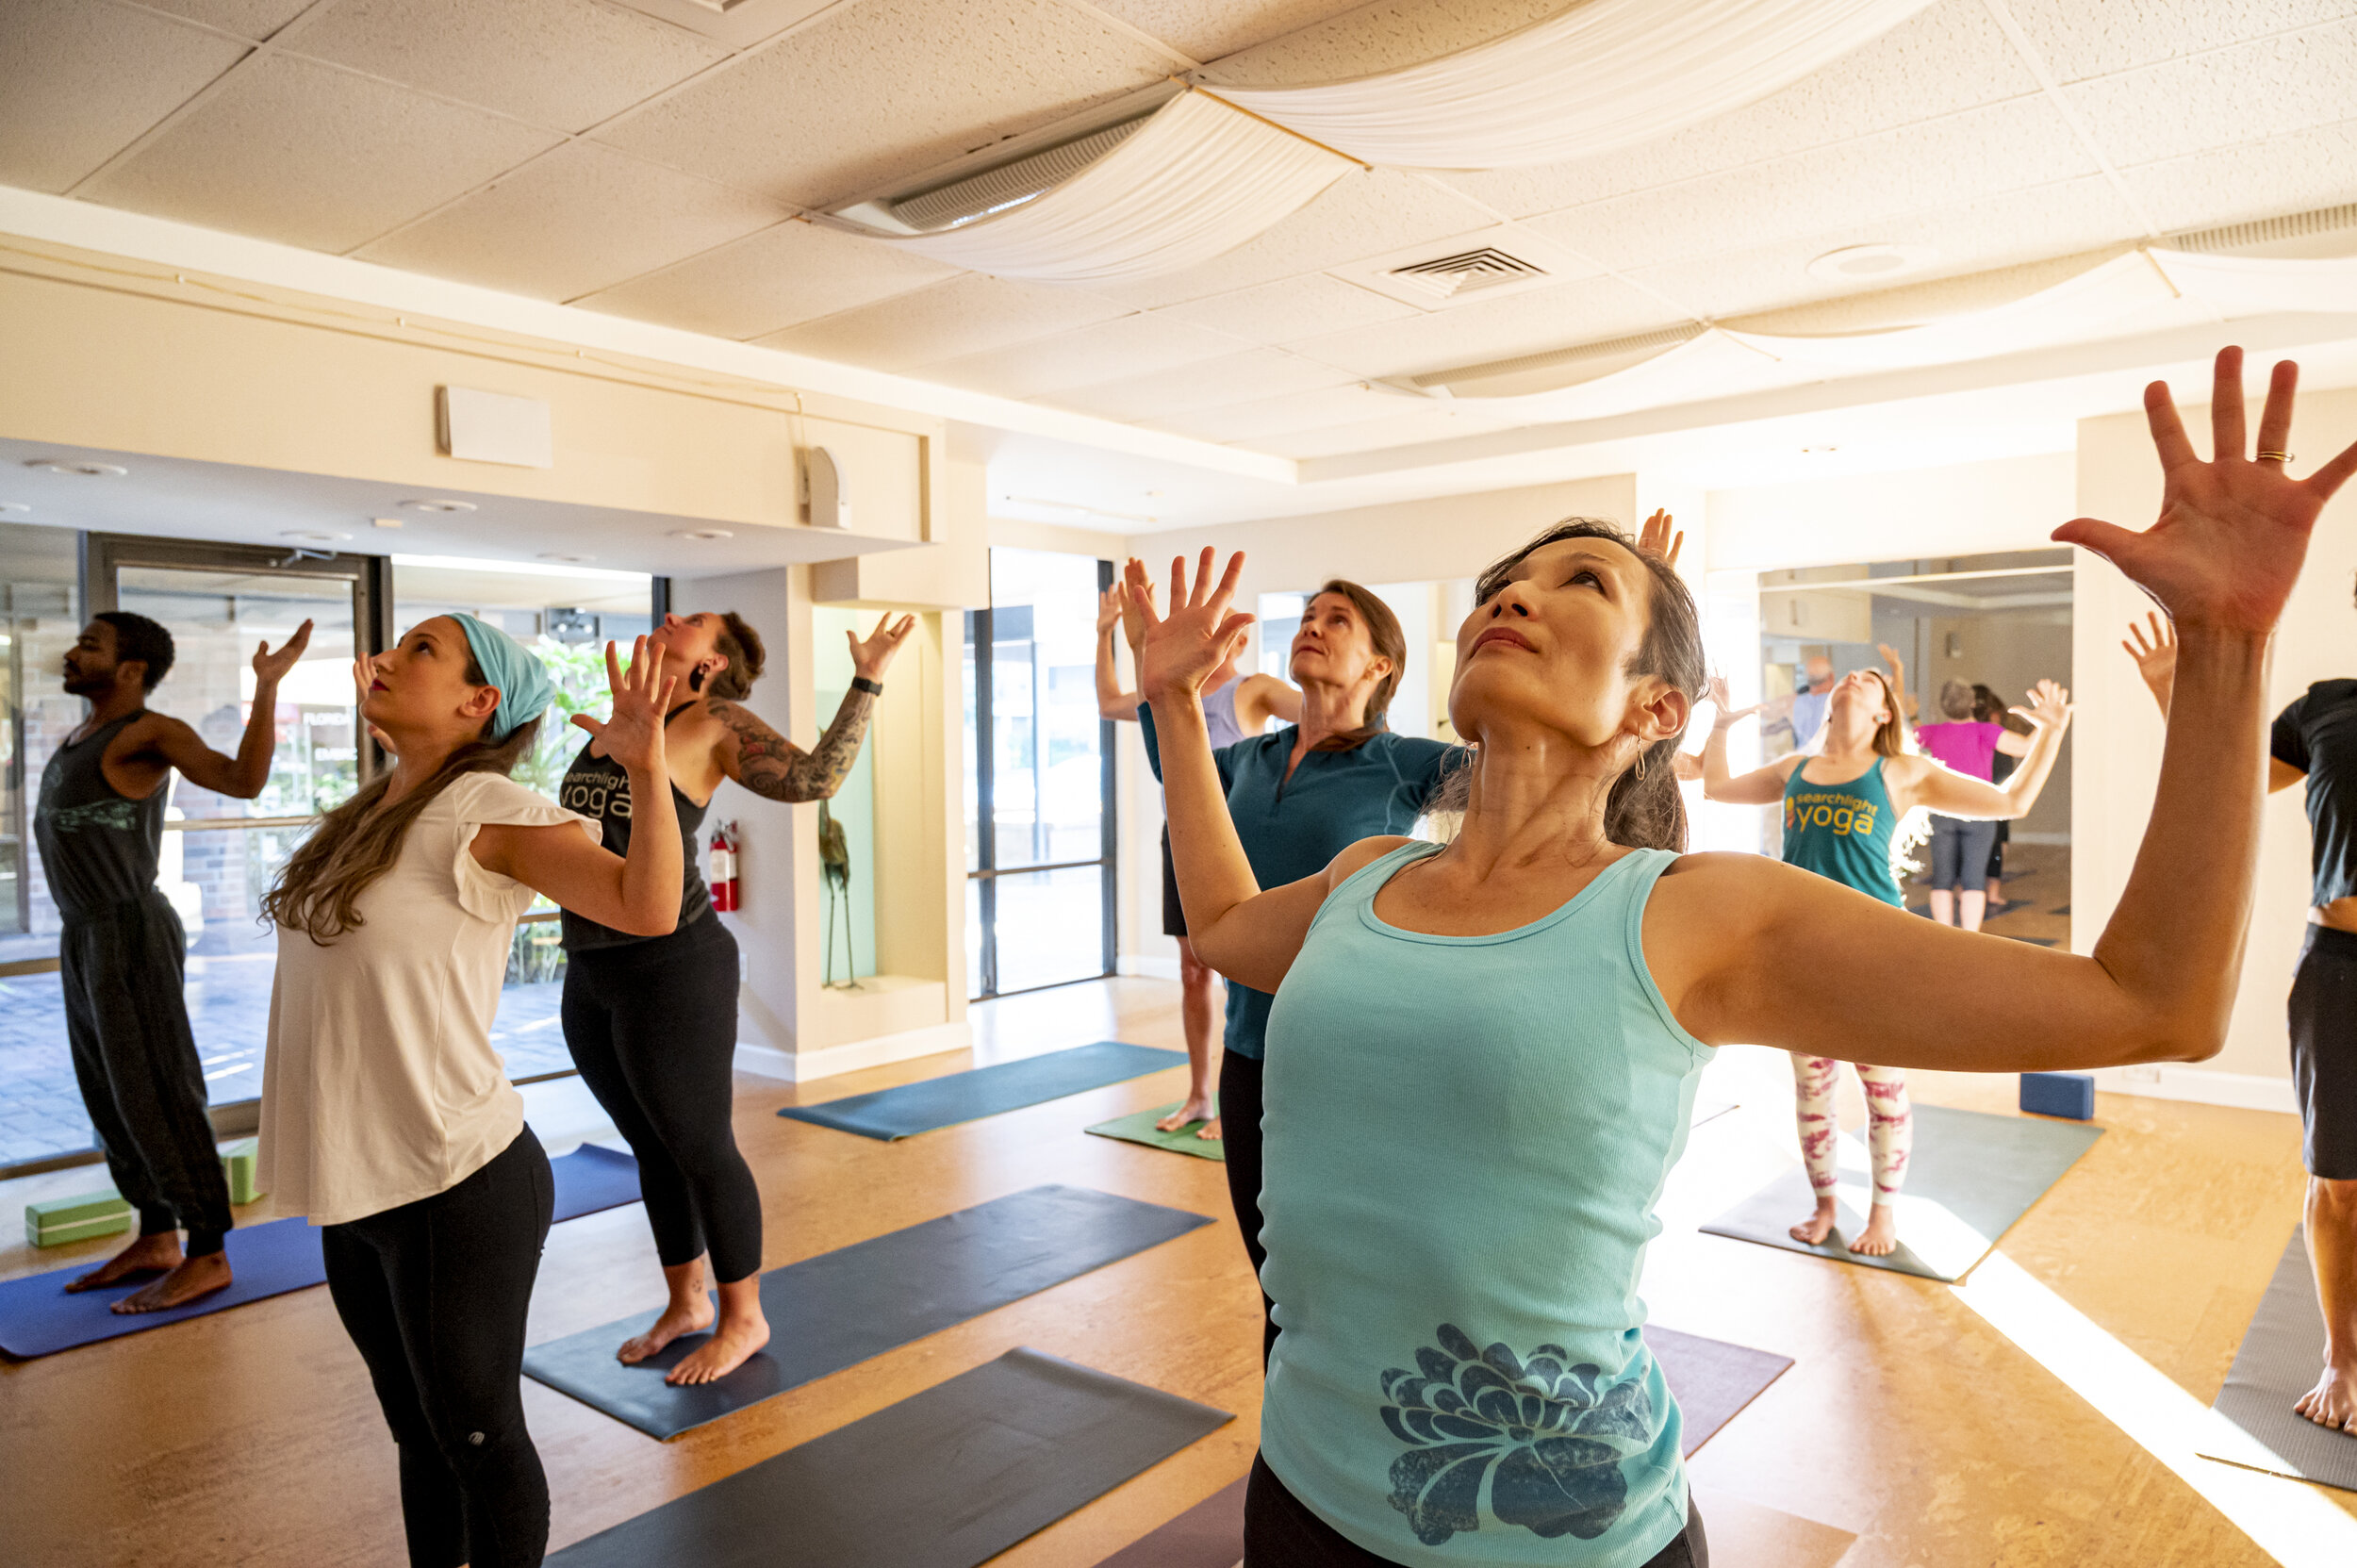 Find Your Class Searchlight Yoga